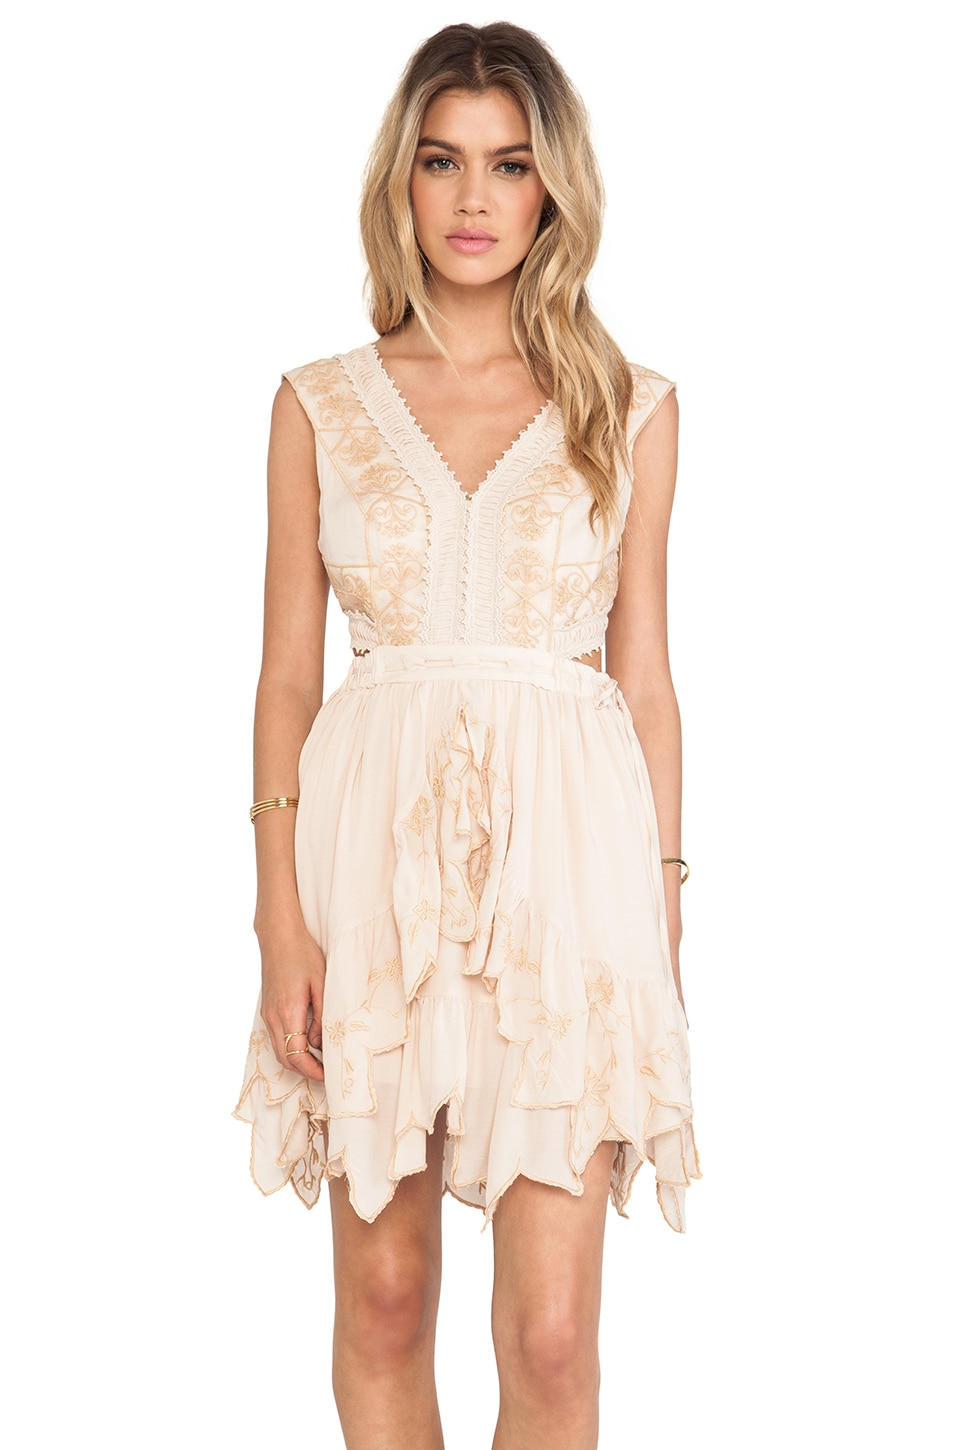 Free People Honeysuckle Rose Dress in Ballet